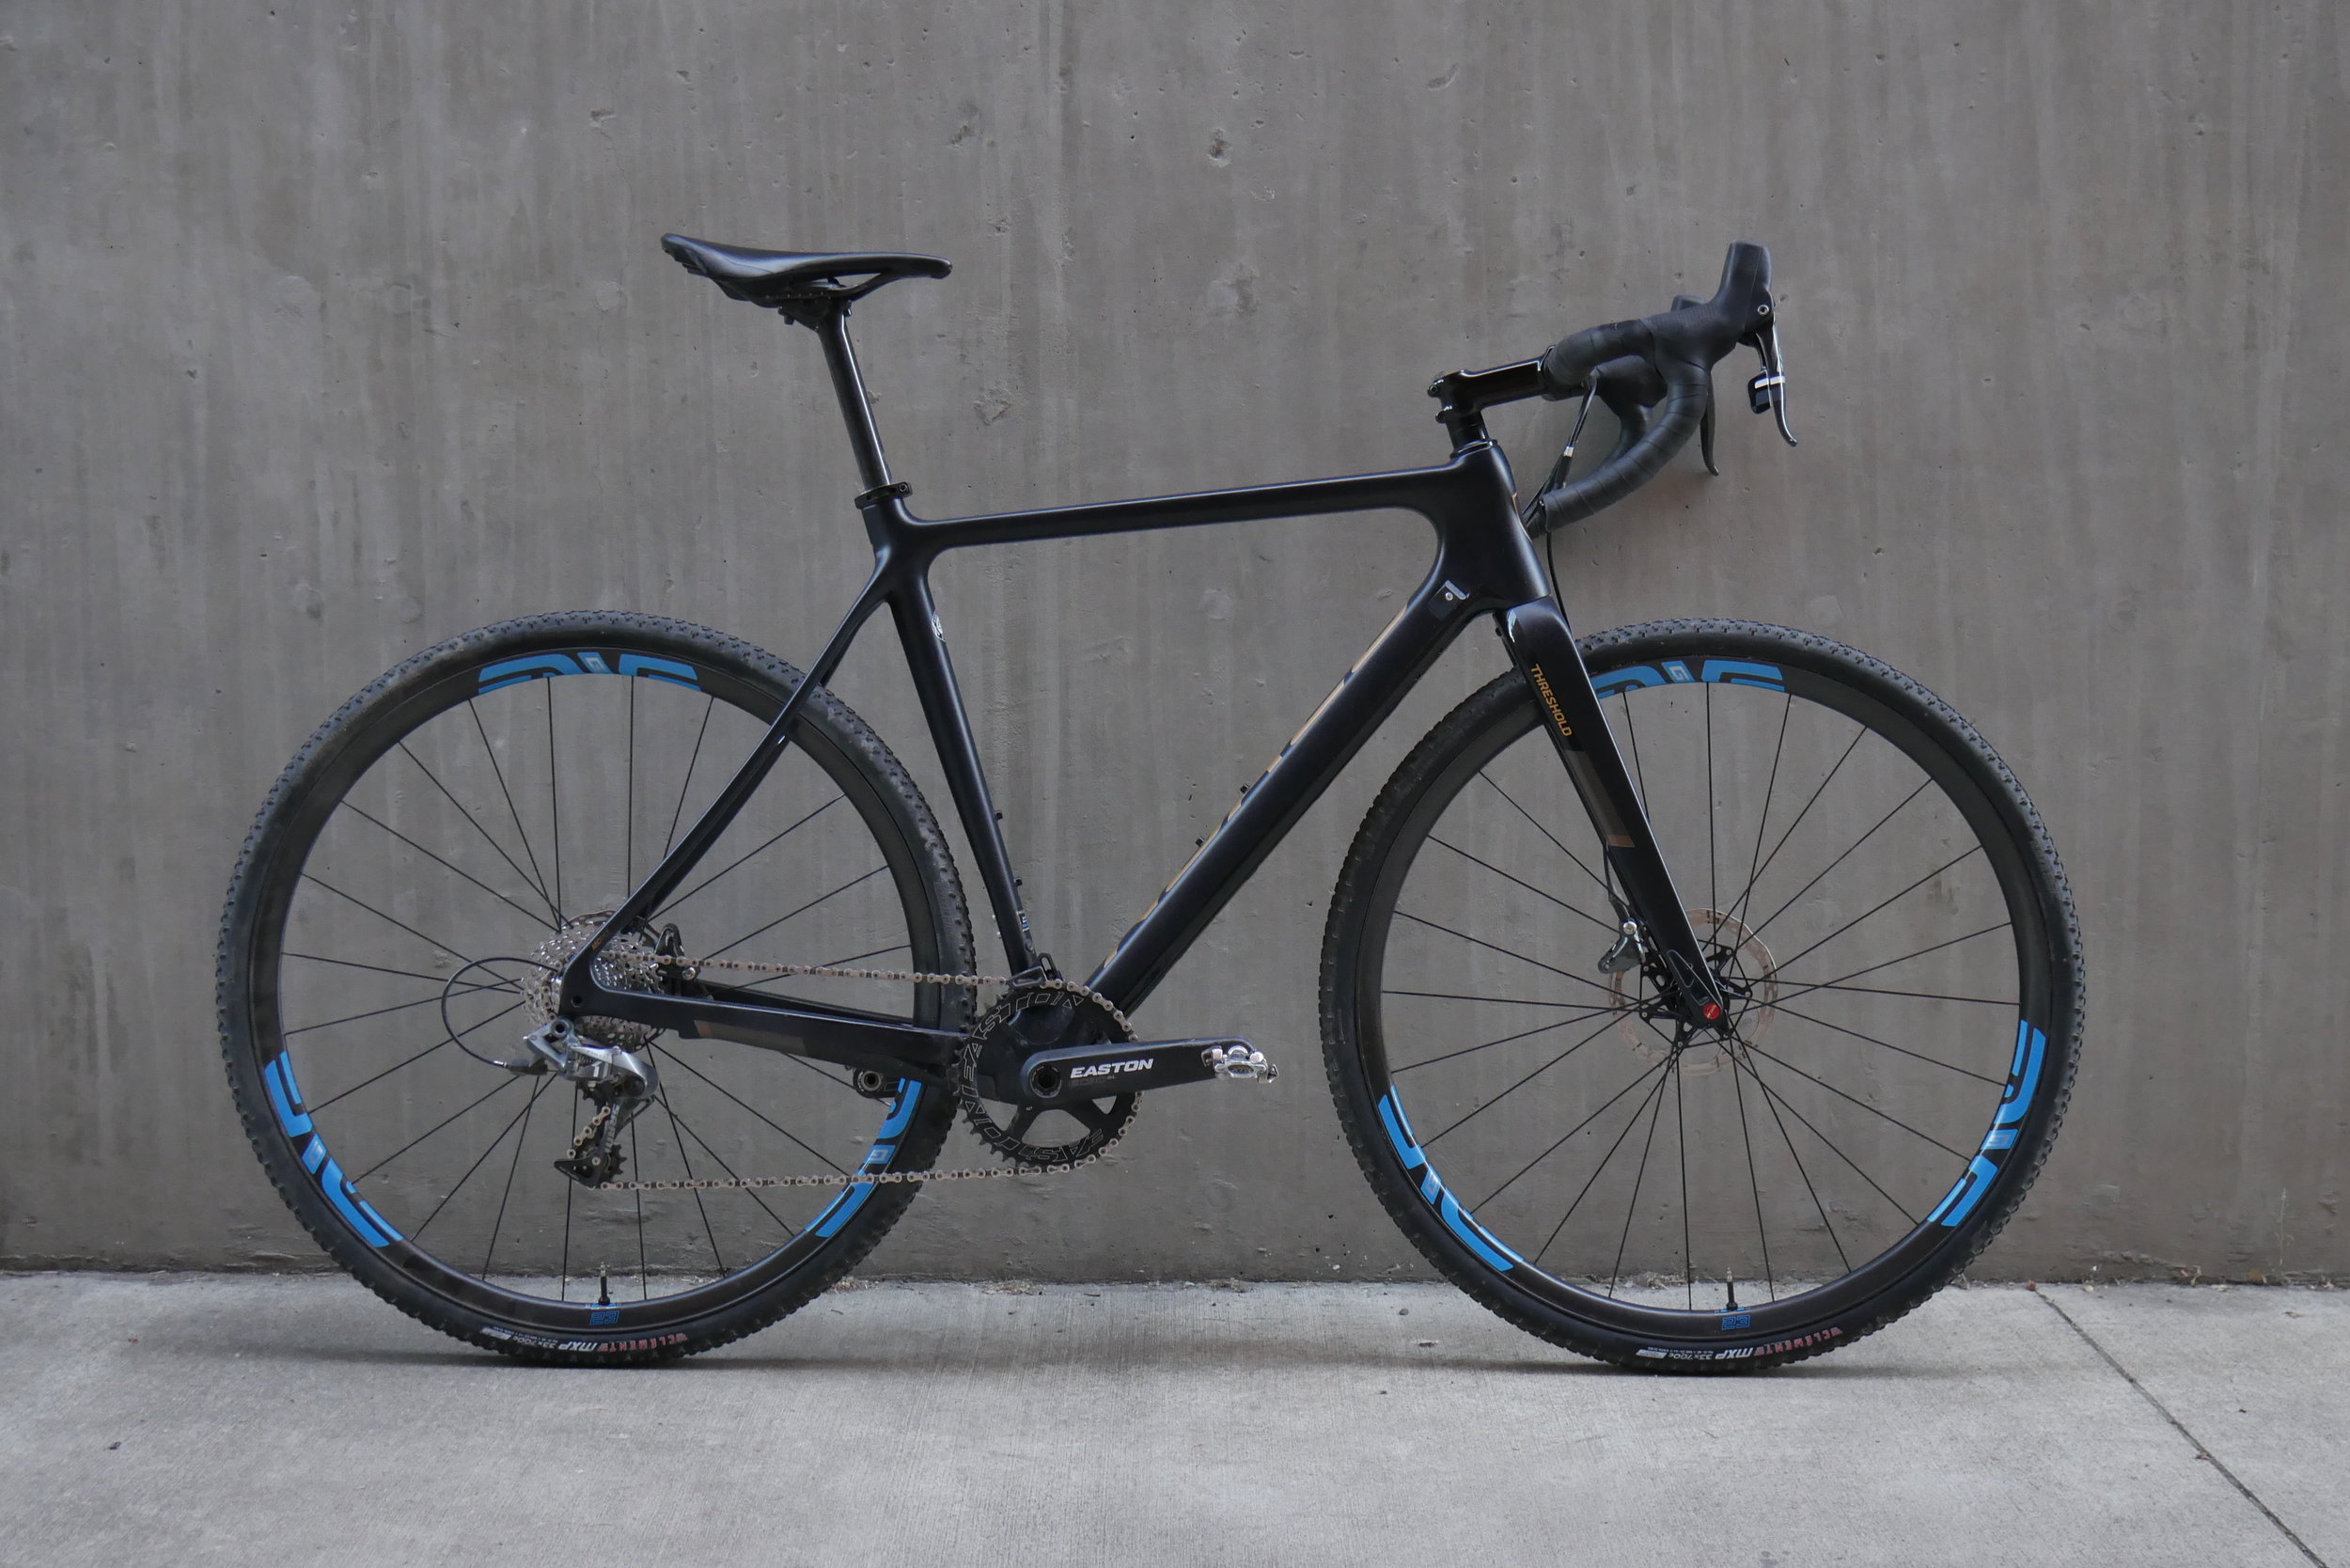 2019 Norco Threshold carbon billy